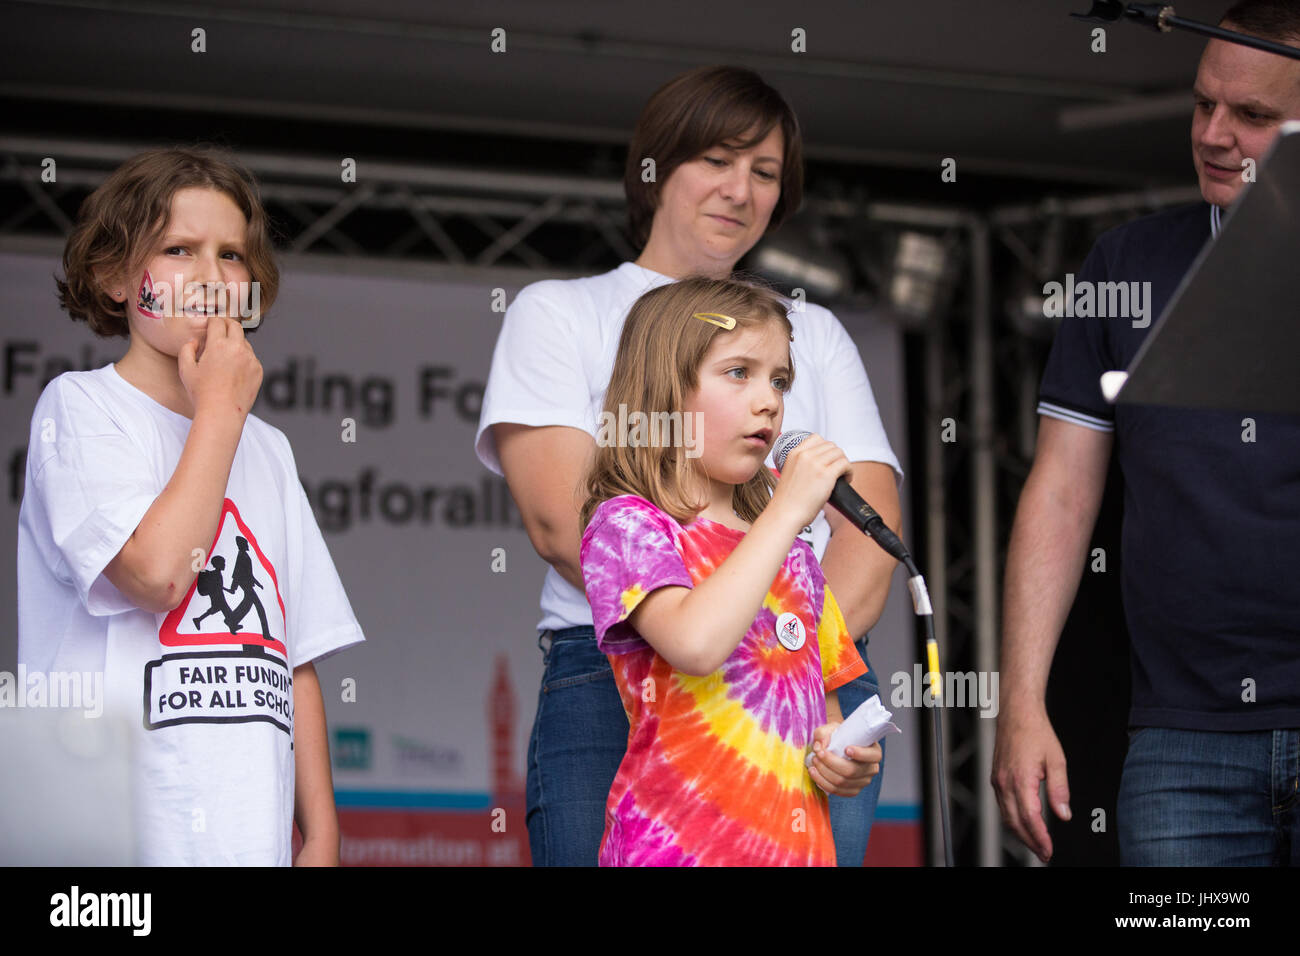 London, UK. 16th July, 2017. Didi Allan, 8, Highgate Primary School pupil, addresses campaigners against cuts to Stock Photo